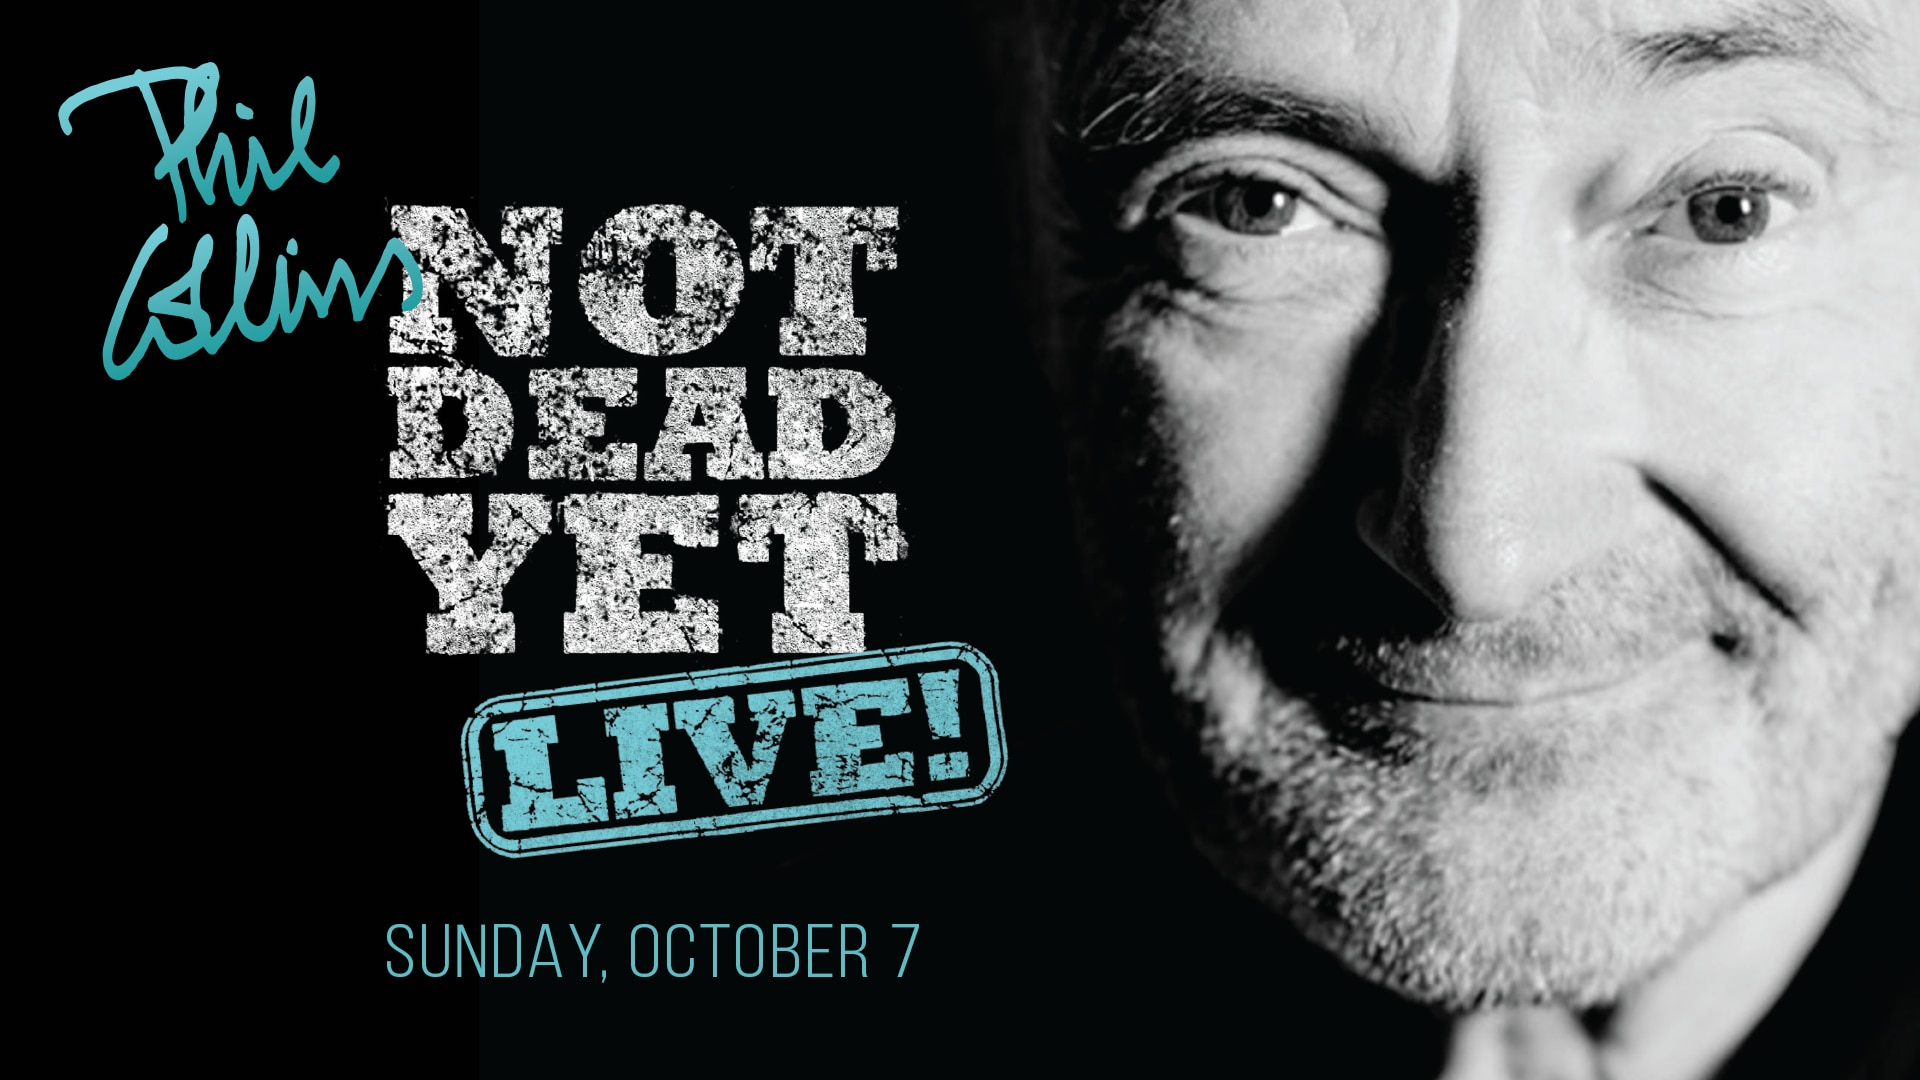 PHIL COLLINS NOT DEAD YET, LIVE! TOUR